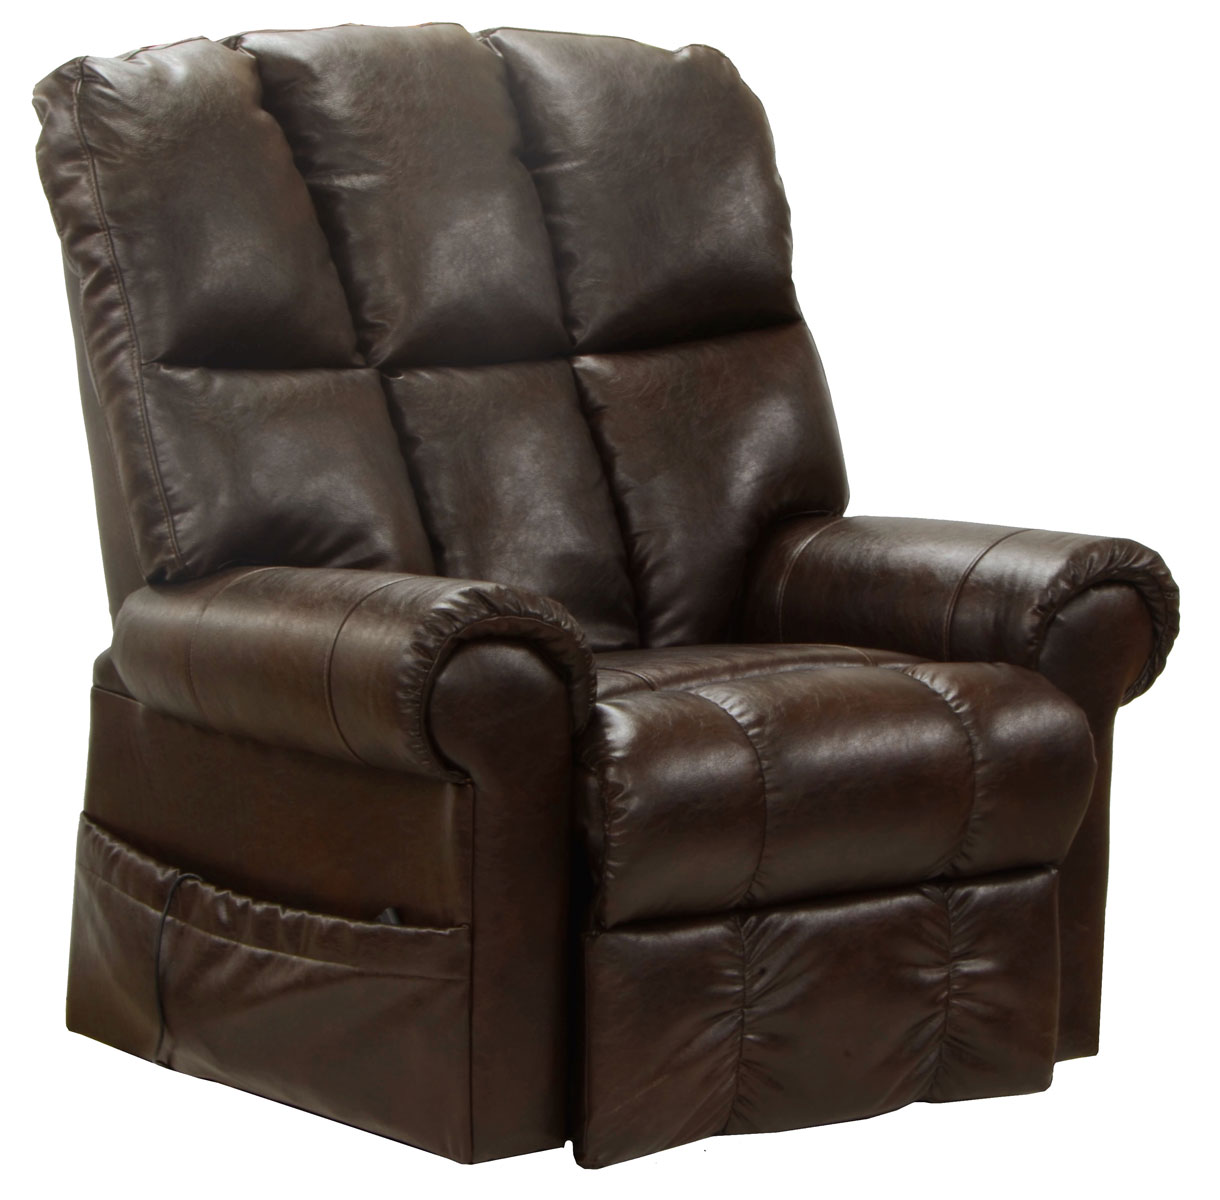 CatNapper Stallworth Bonded Leather Power Lift Full Lay Out Chaise Recliner - Godiva